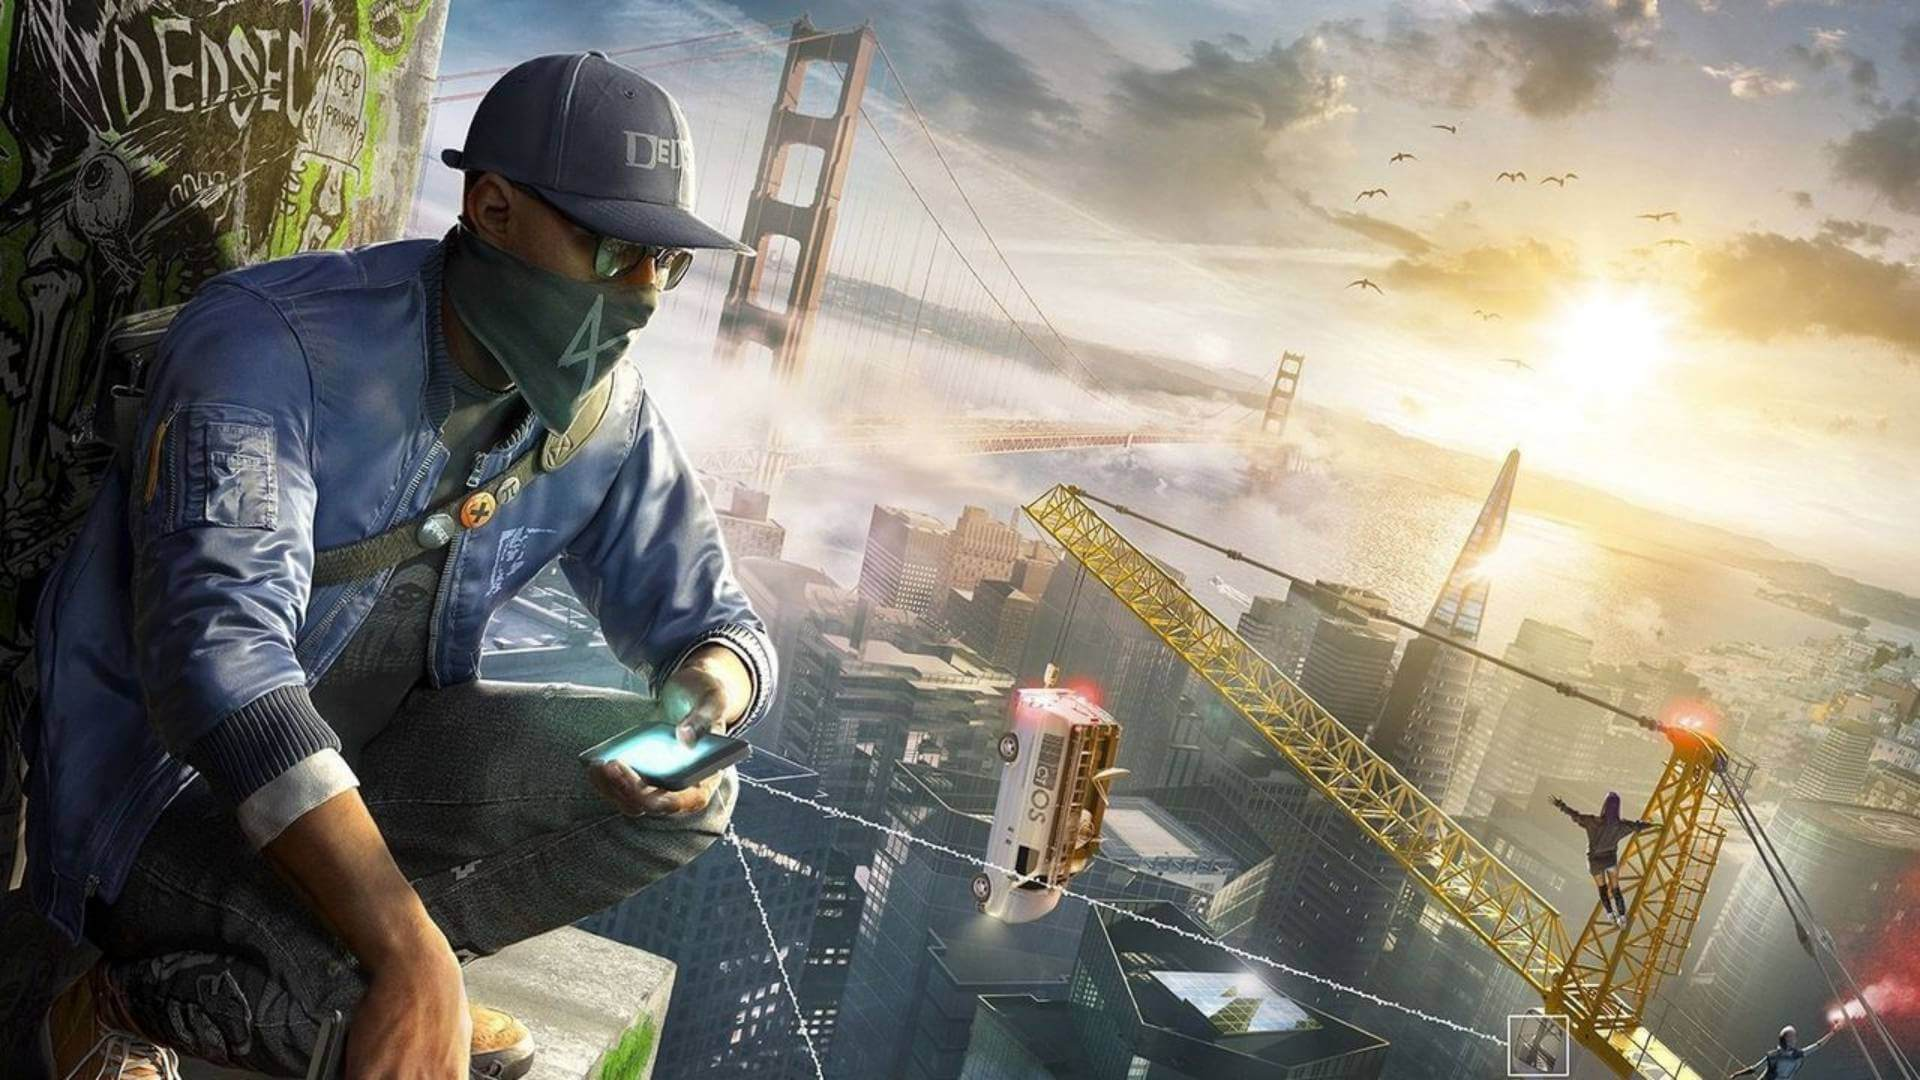 http://thenerdstash.com/wp-content/uploads/2016/06/watch_dogs_2.0.0.jpg